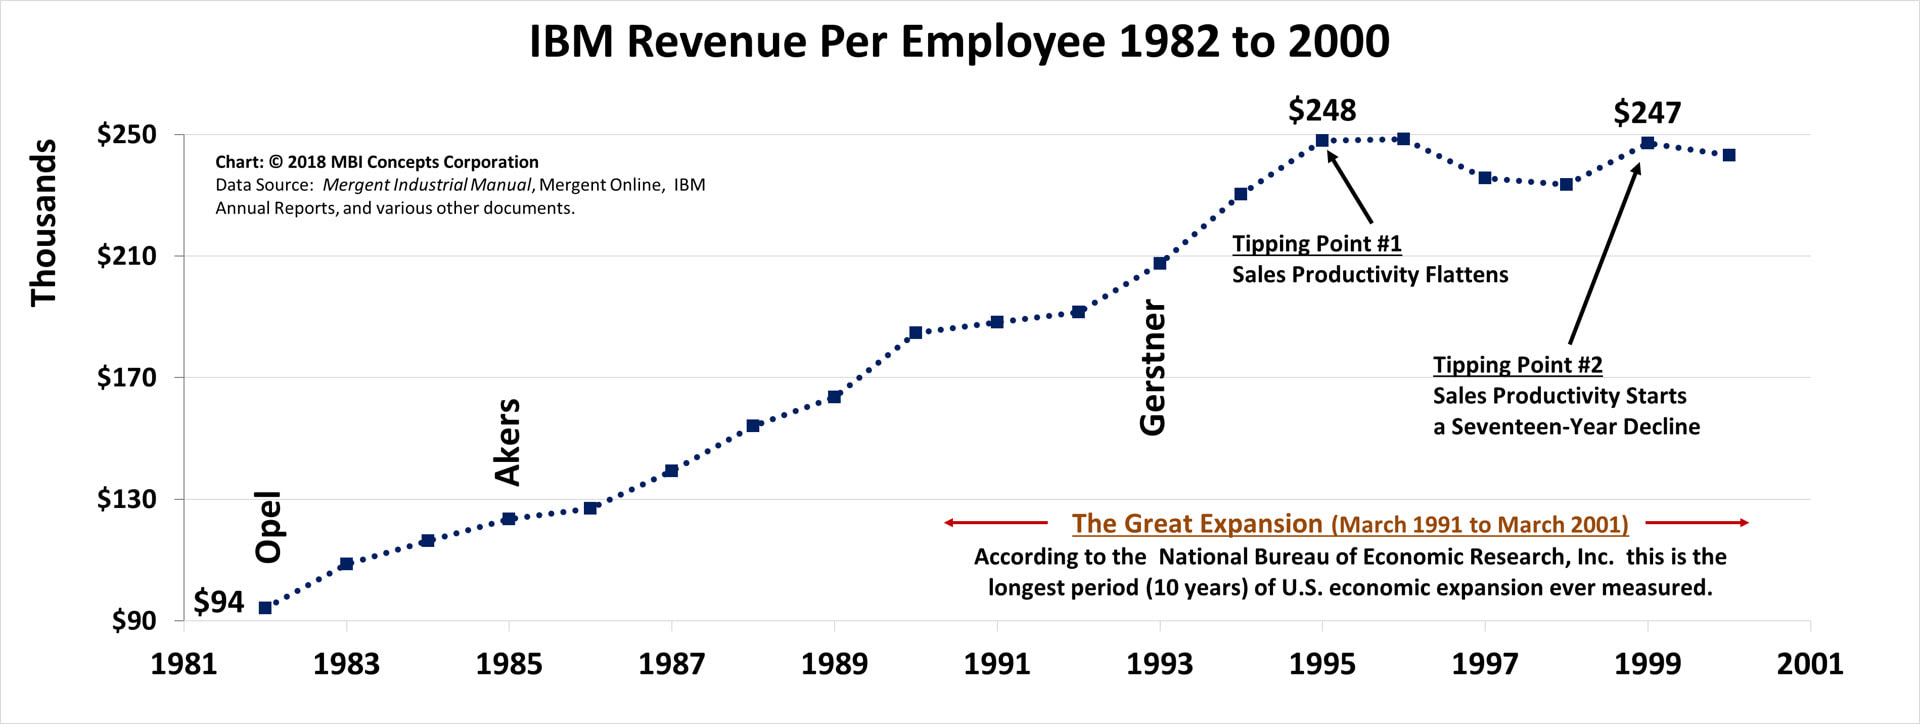 Line graph of IBM's Yearly Revenue per Employee from 1982 to 2000 showing tipping points in 1995 (flattening of productivity) and 1999 (dropping productivity).